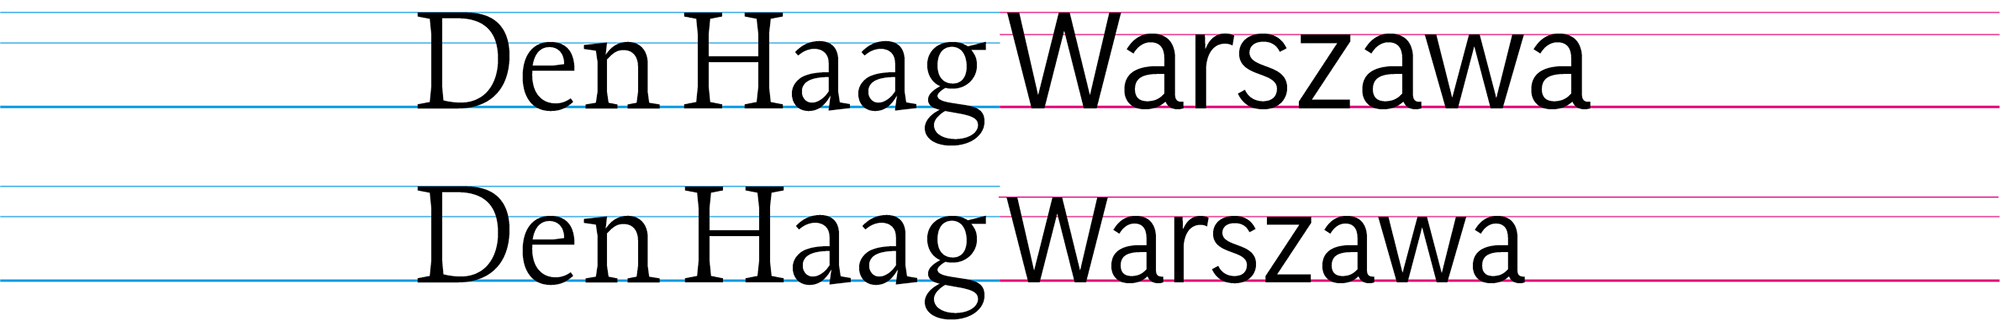 When comparing and mixing typefaces, their x-heights should be matched. Although Petr van Blokland's Proforma and Łukasz Dziedzic's FF Good® are set in the same size in this example (first line), they don't appear even. The latter has a much larger x-height, therefore it needs to be decreased in size just slightly (second line). Lowercase letters dominate the text and therefore define the appearance of a typeface.